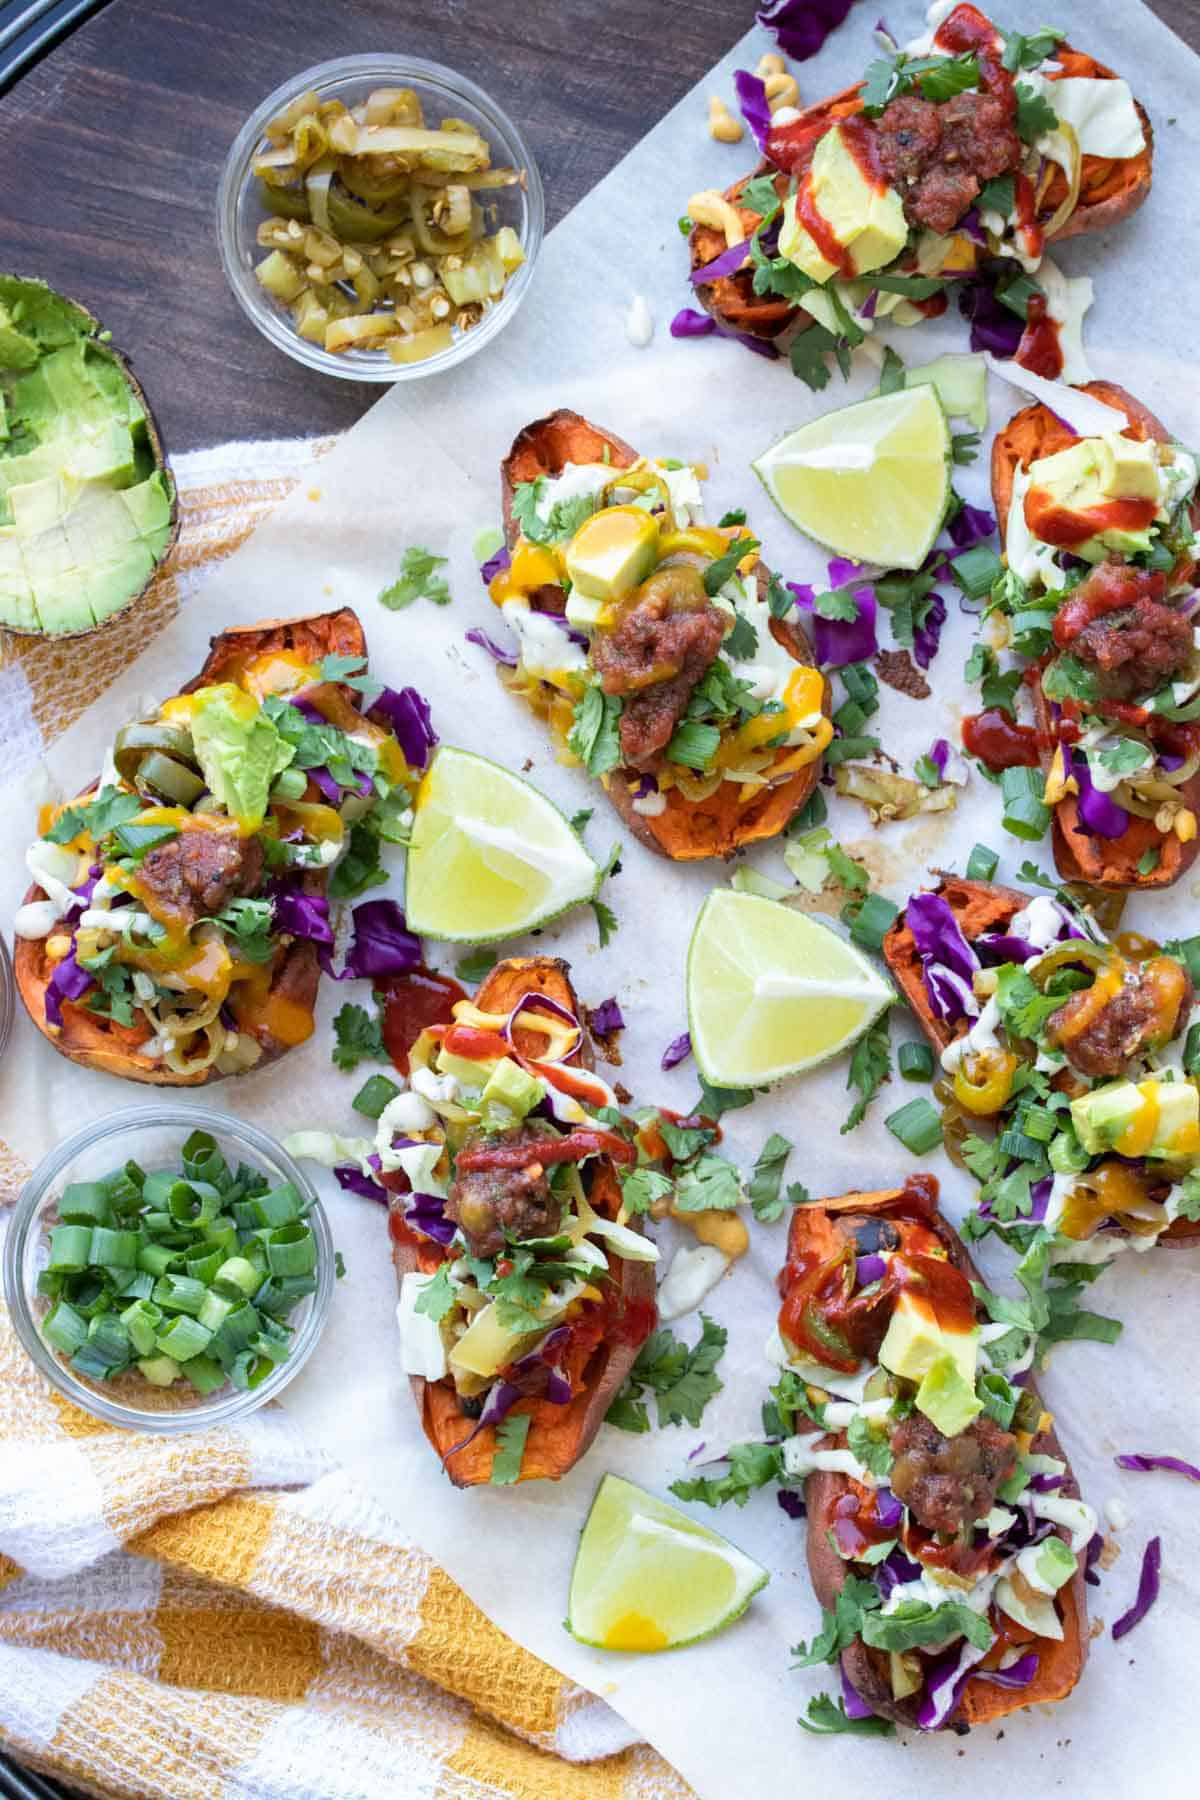 Top view of baked sweet potato skins fully loaded with toppings